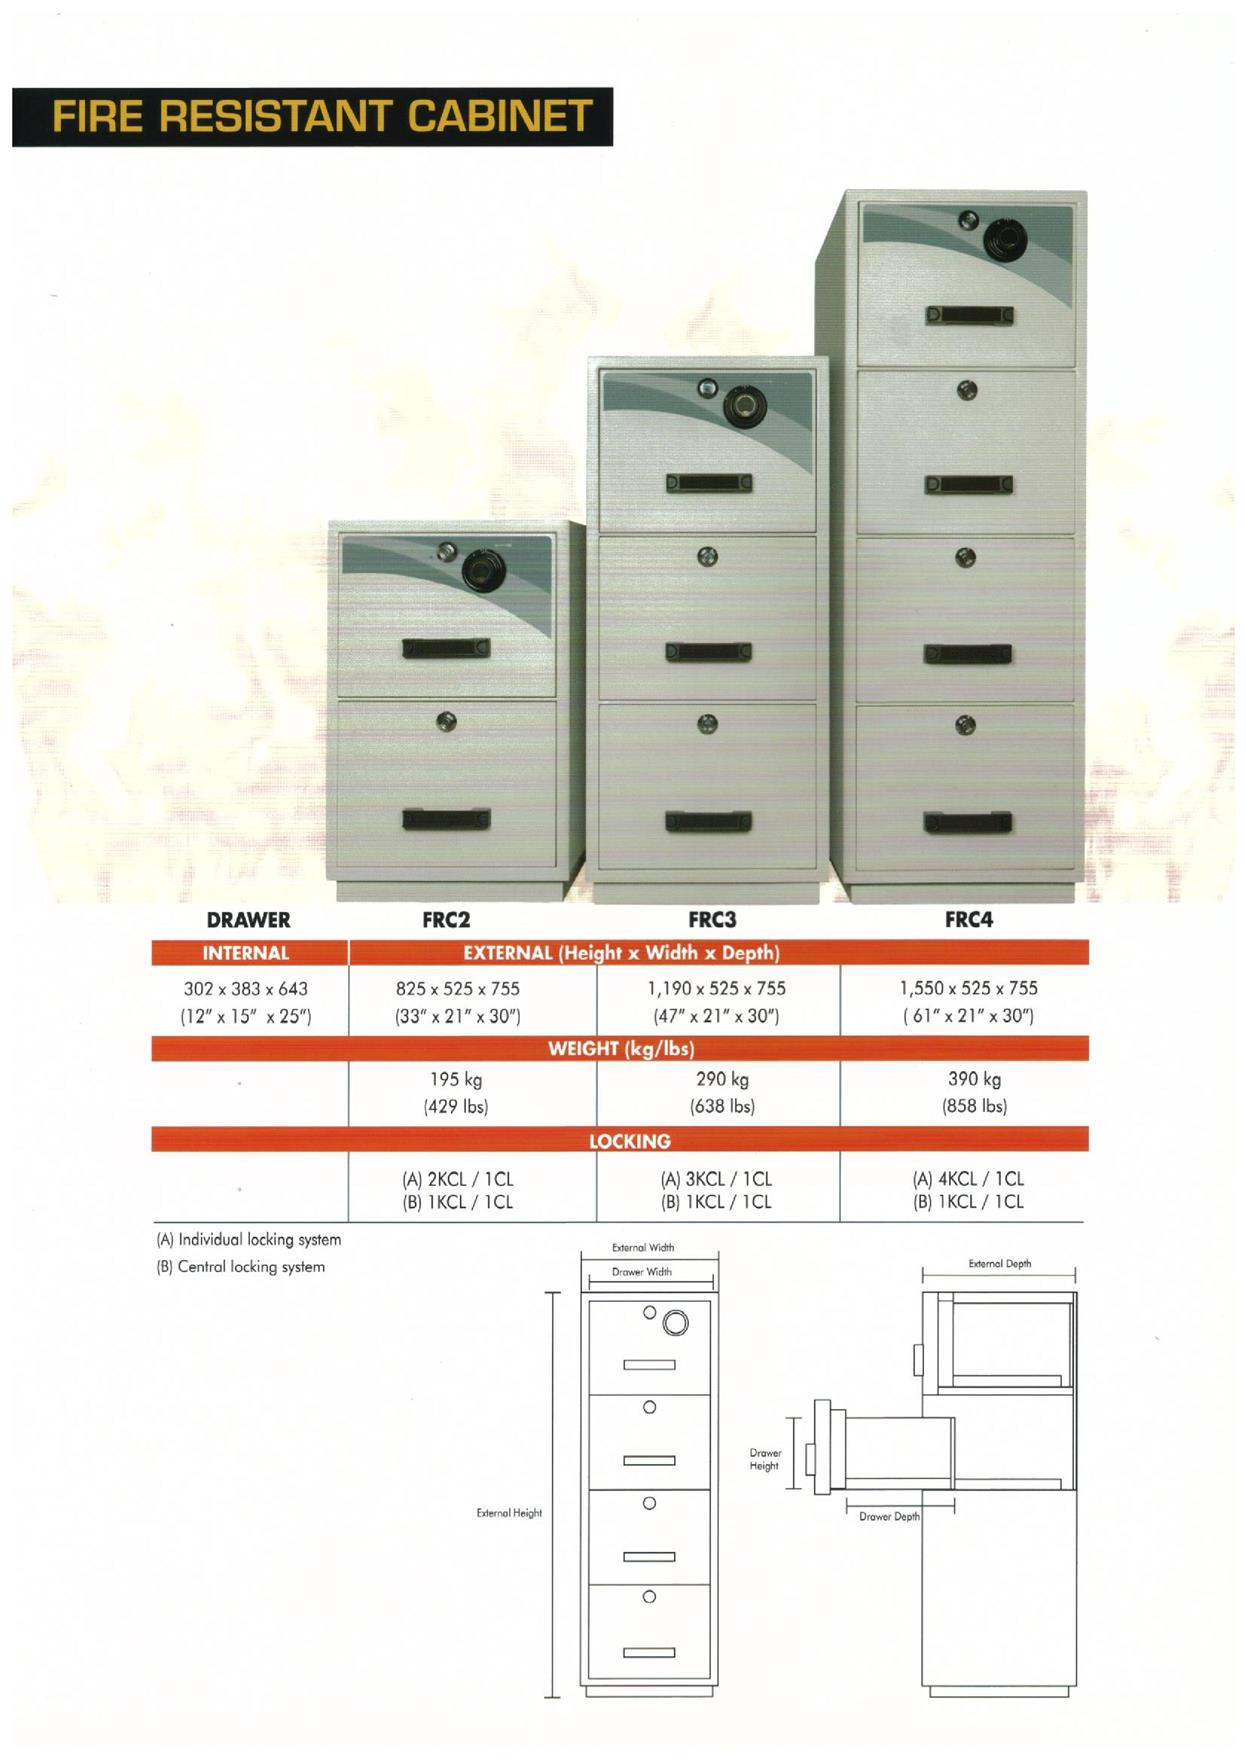 FALCON 3 Drawers Fire Resistant Filing Cabinet (1hr Fire Resistance)